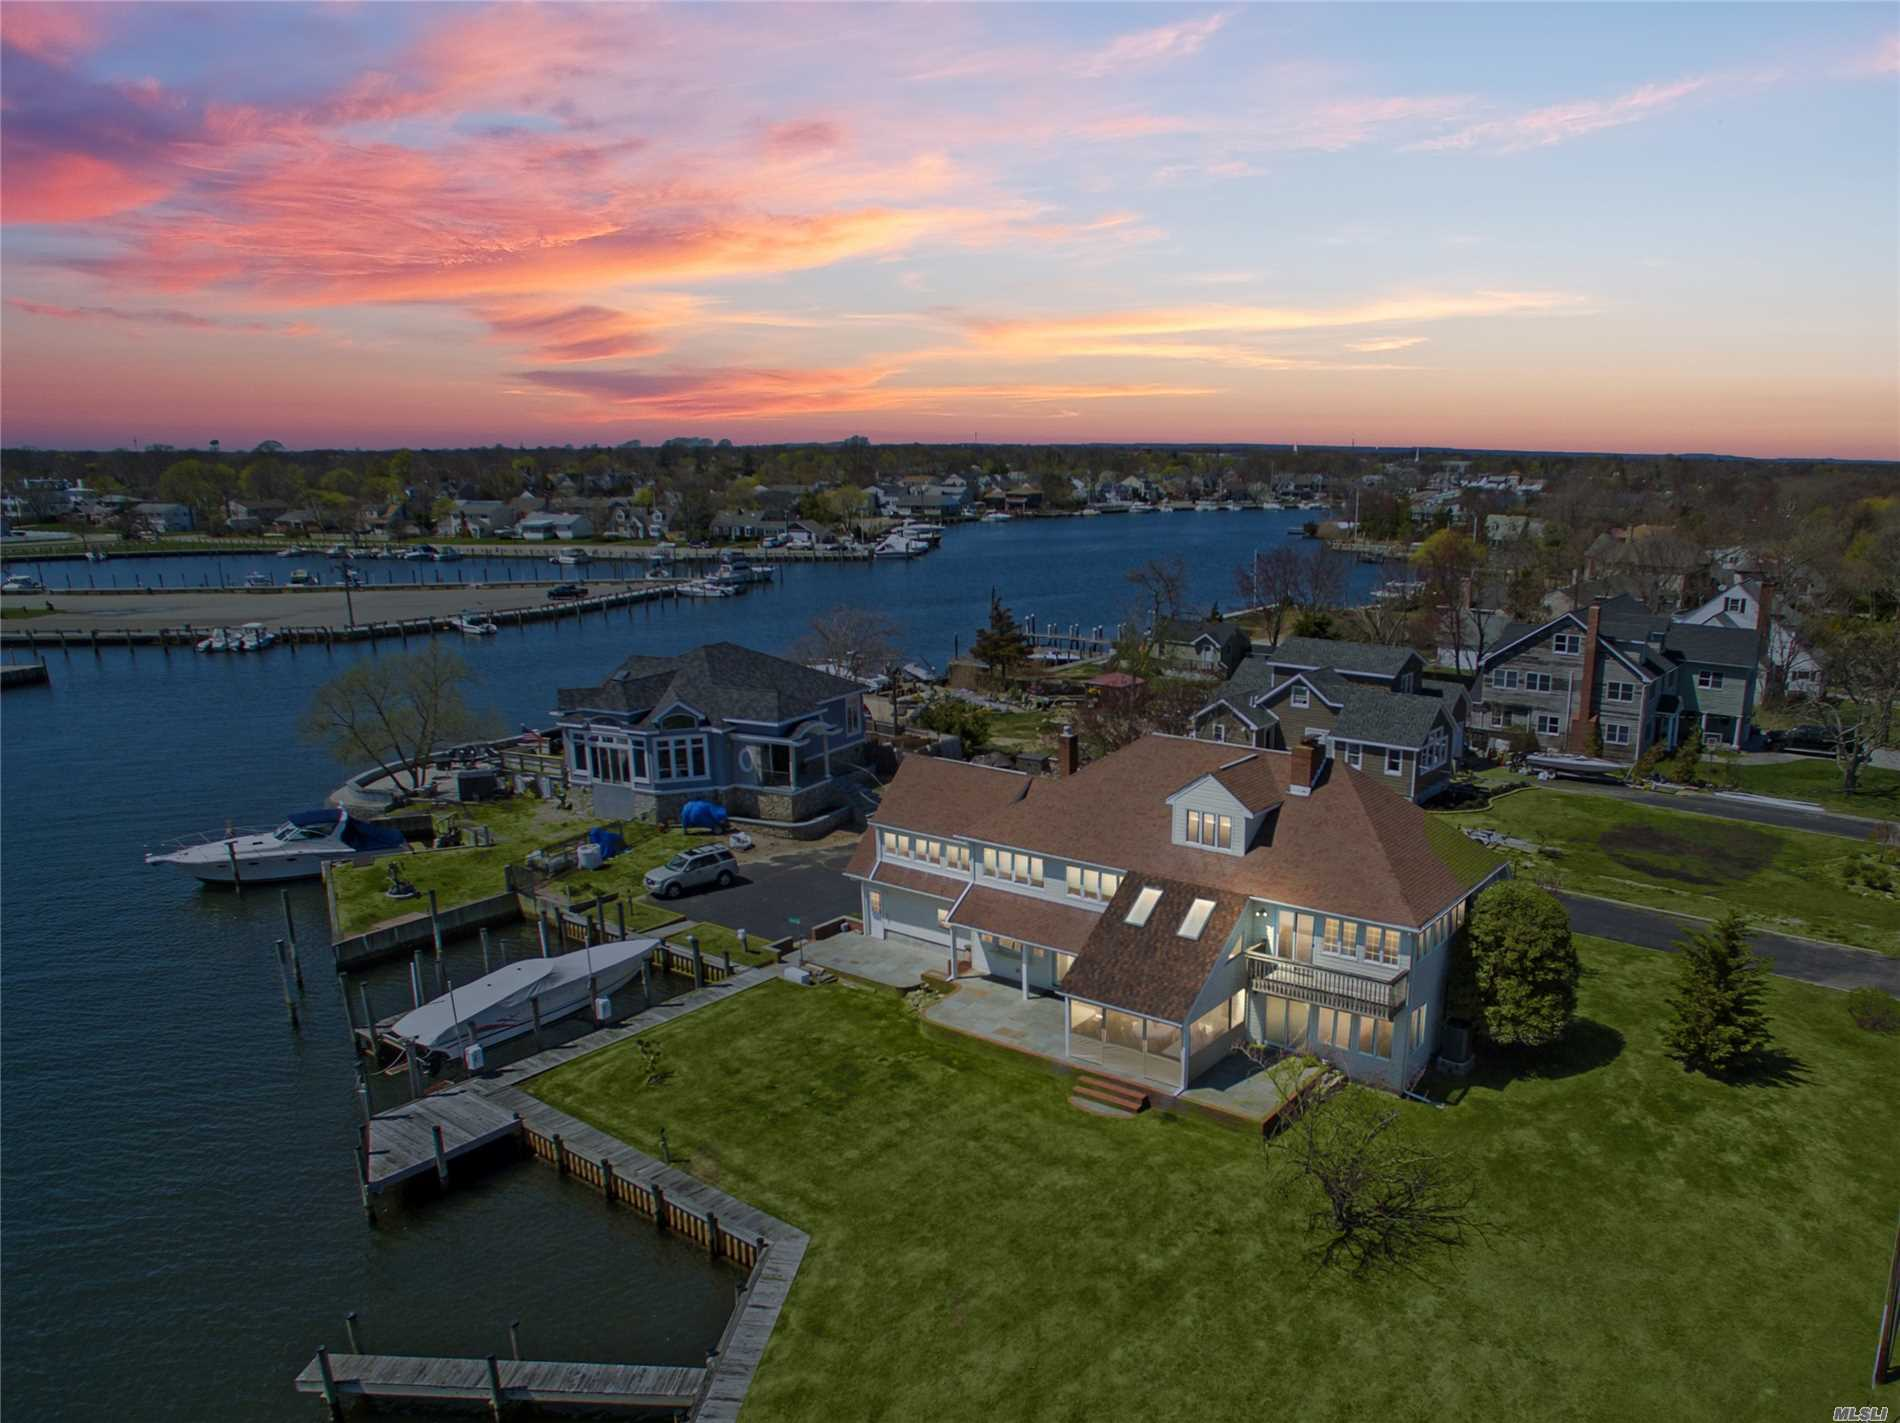 Spectacular Bayviews From This Waterfront Home W/295' Bulkhead (245' Navy Sealock) & 175' Finger Piers W/5 Slips. Superb 4 (Poss 5) Bedrooms & Den, 2.5 Bath Updated Boaters' Paradise Oak Flrs On 1st Floor & Lush Carpeting On 2nd. Master Suite W/Bath & Gas Fireplace (3 Total) Plus 22'X24' Rec Room Just Part Of Spacious 2nd Floor. Fantastic Views From Virtually Every Room, Including Crow's Nest. Entertain Inside & Out On Grand .44 Acre. New Gas Heat & Cac. Check Out Aerial Virtual Tour Attached